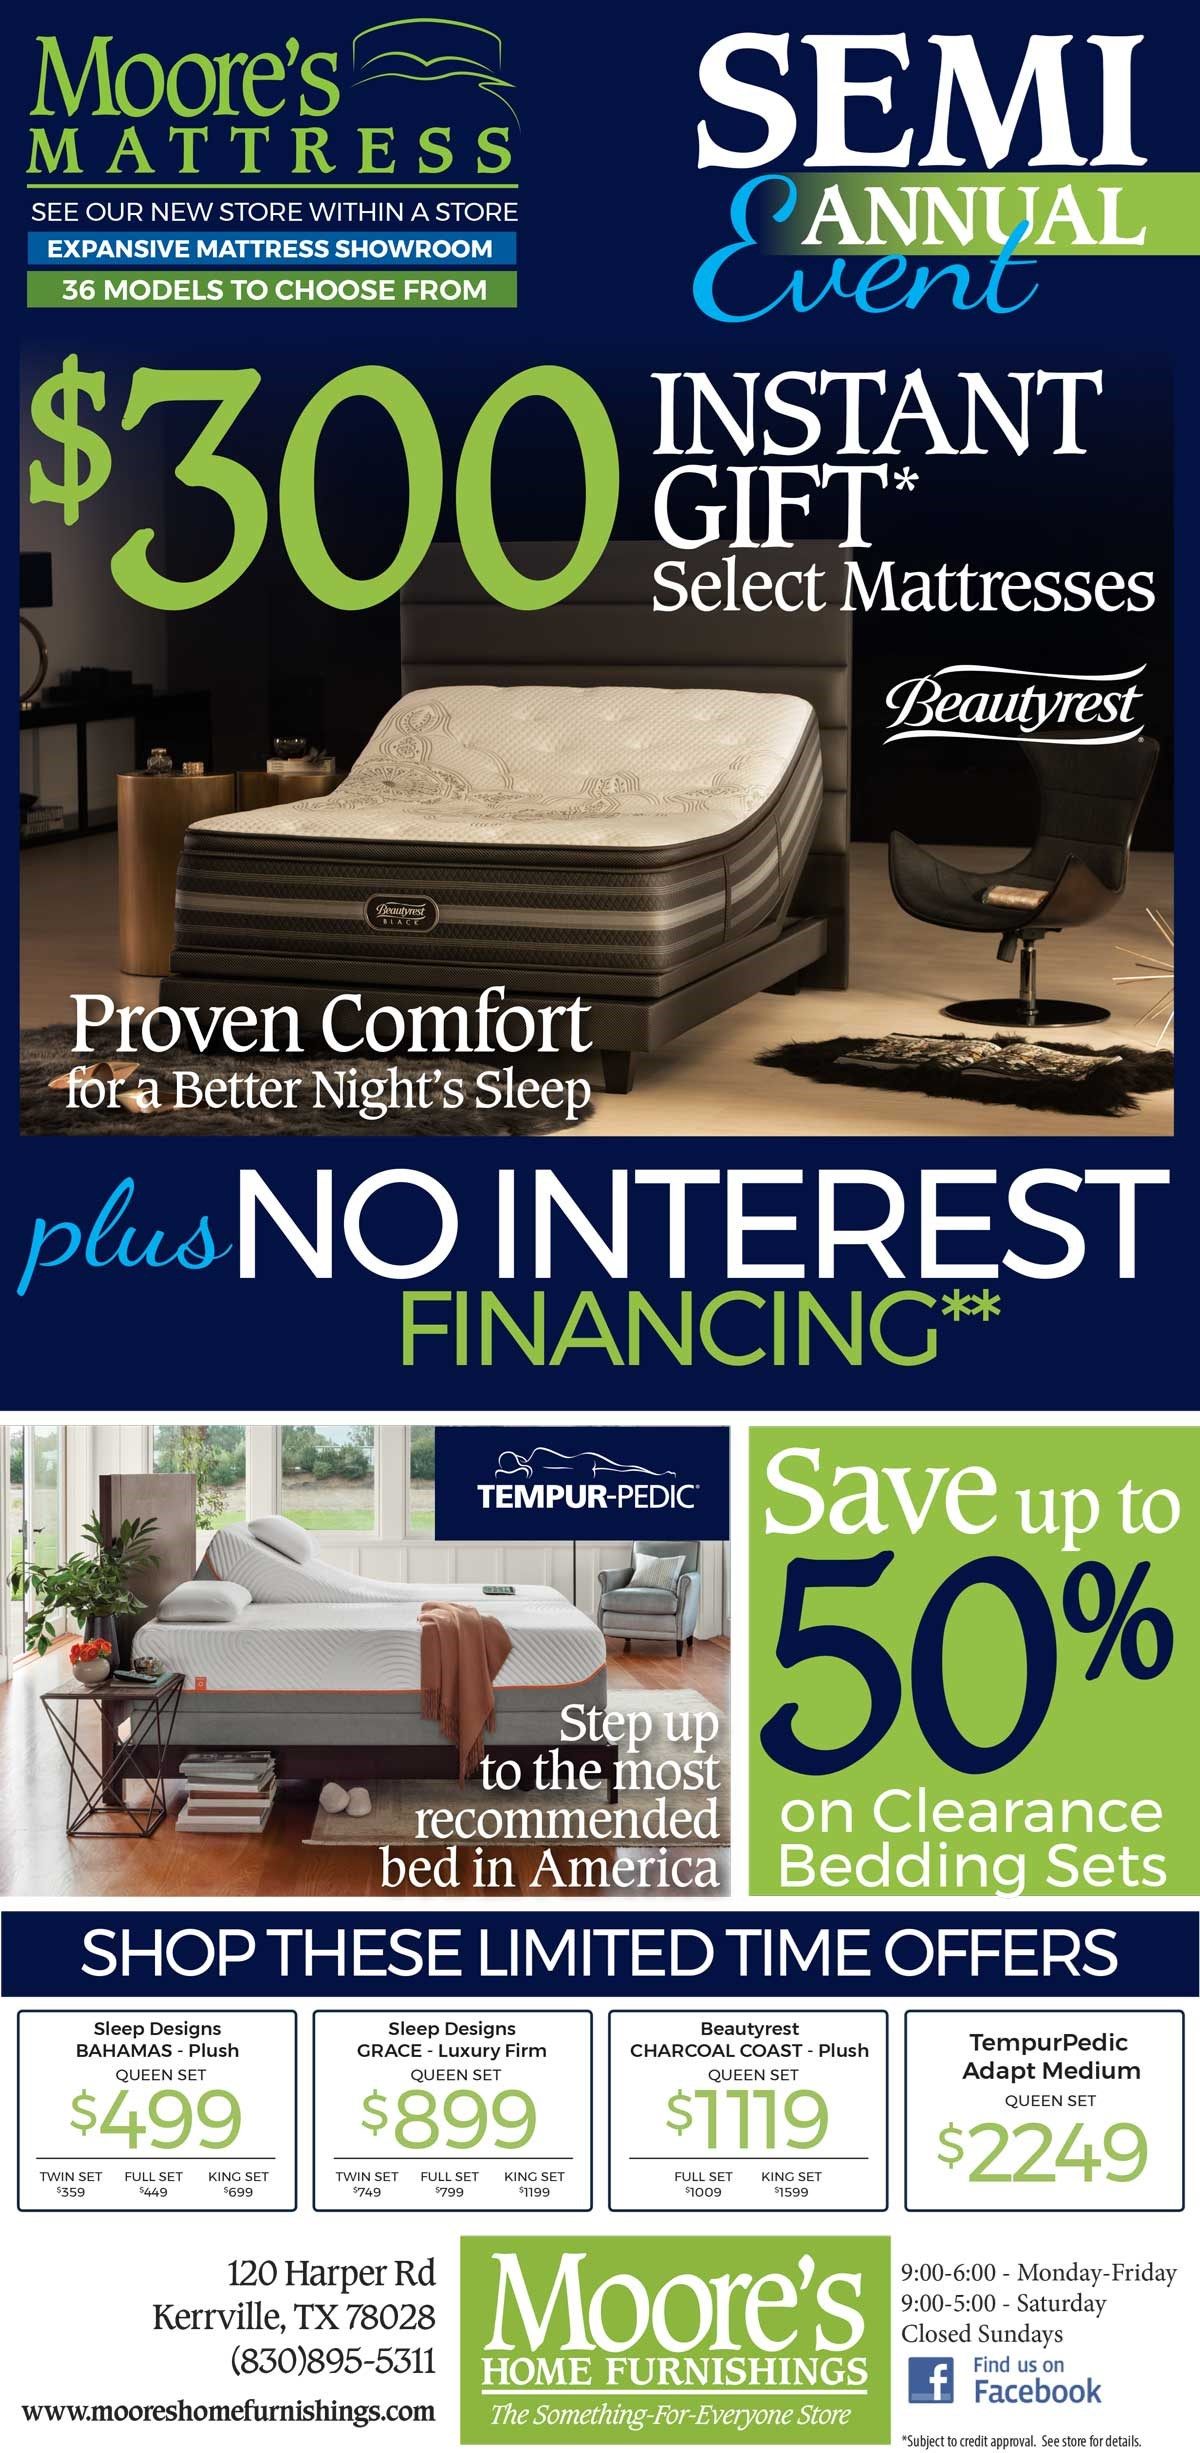 $300 Instant gift on select mattresses plus interest free financing.